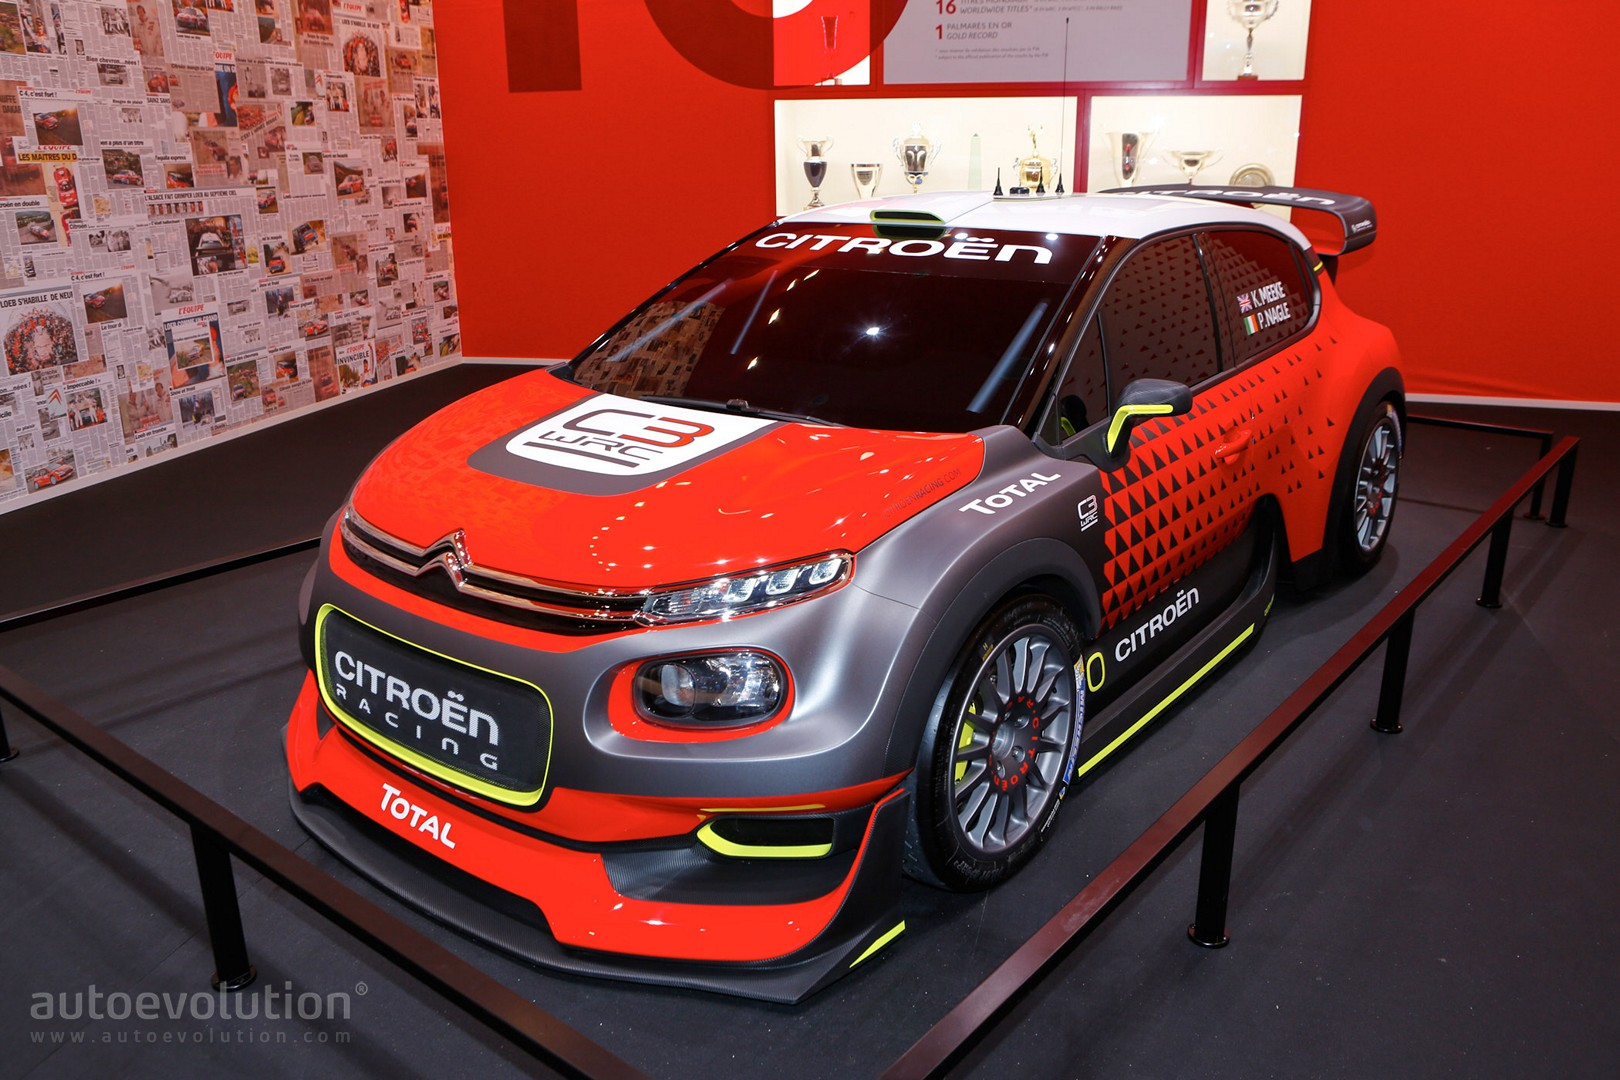 Citroen S C3 Wrc Is The Most Beautiful Rally Car In Paris